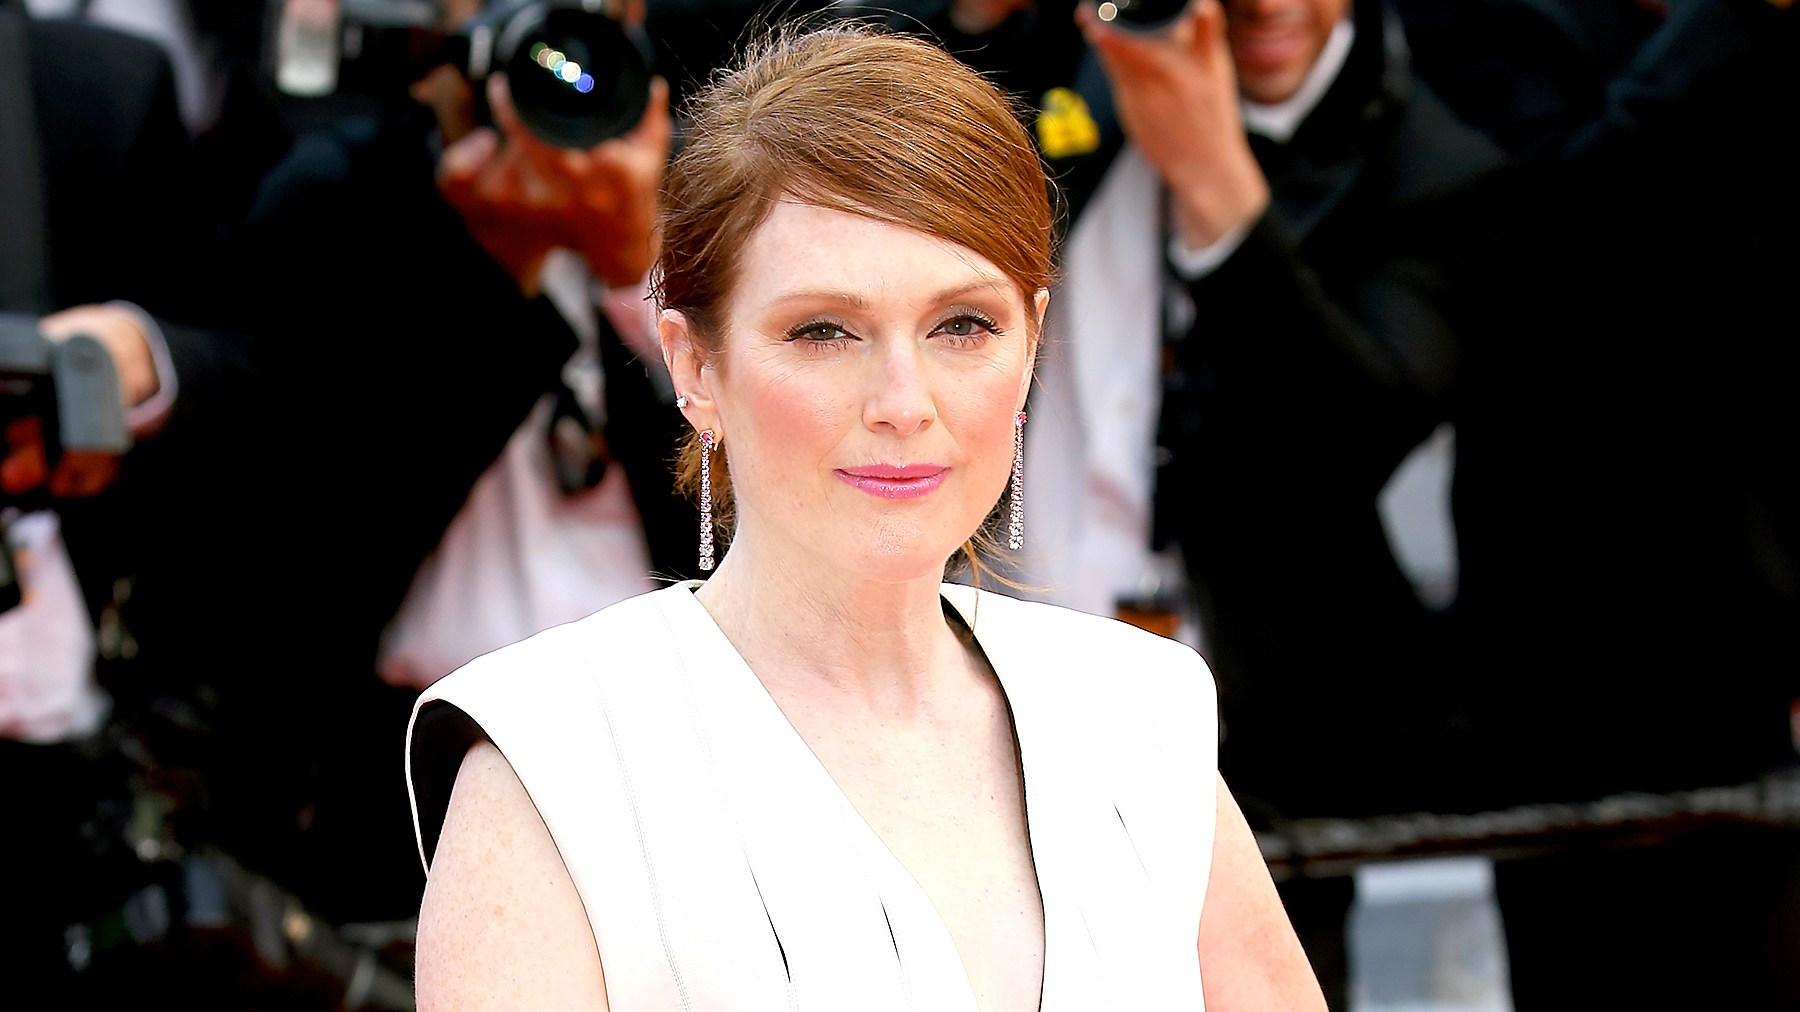 """Julianne Moore attends the screening of """"Money Monster"""" at the annual 69th Cannes Film Festival at Palais des Festivals on May 12, 2016 in Cannes, France."""